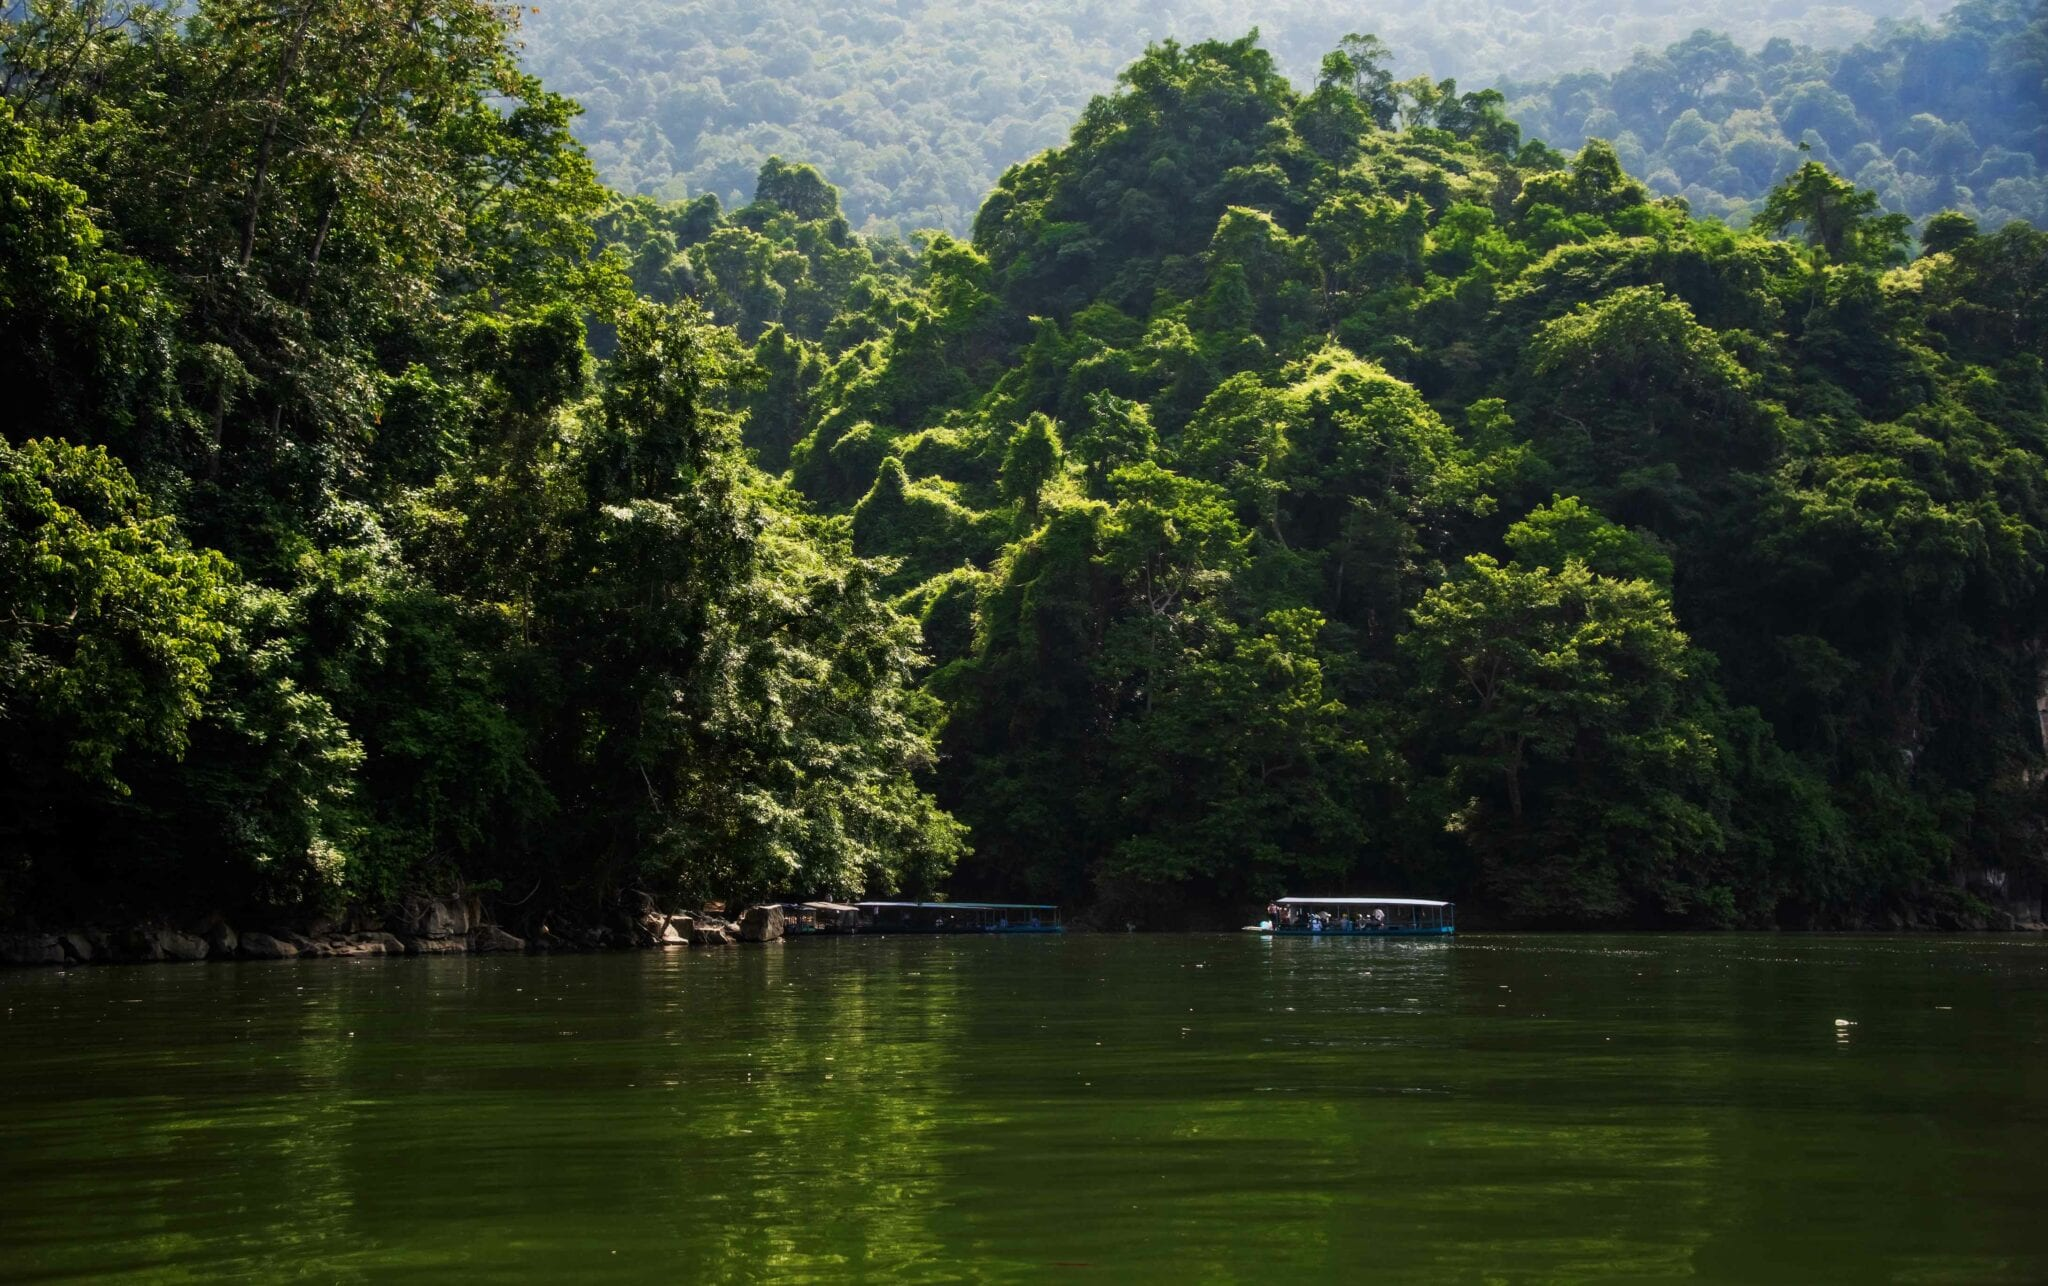 Image of the jungle behind the lake in Ba Bê National Park in Vietnam